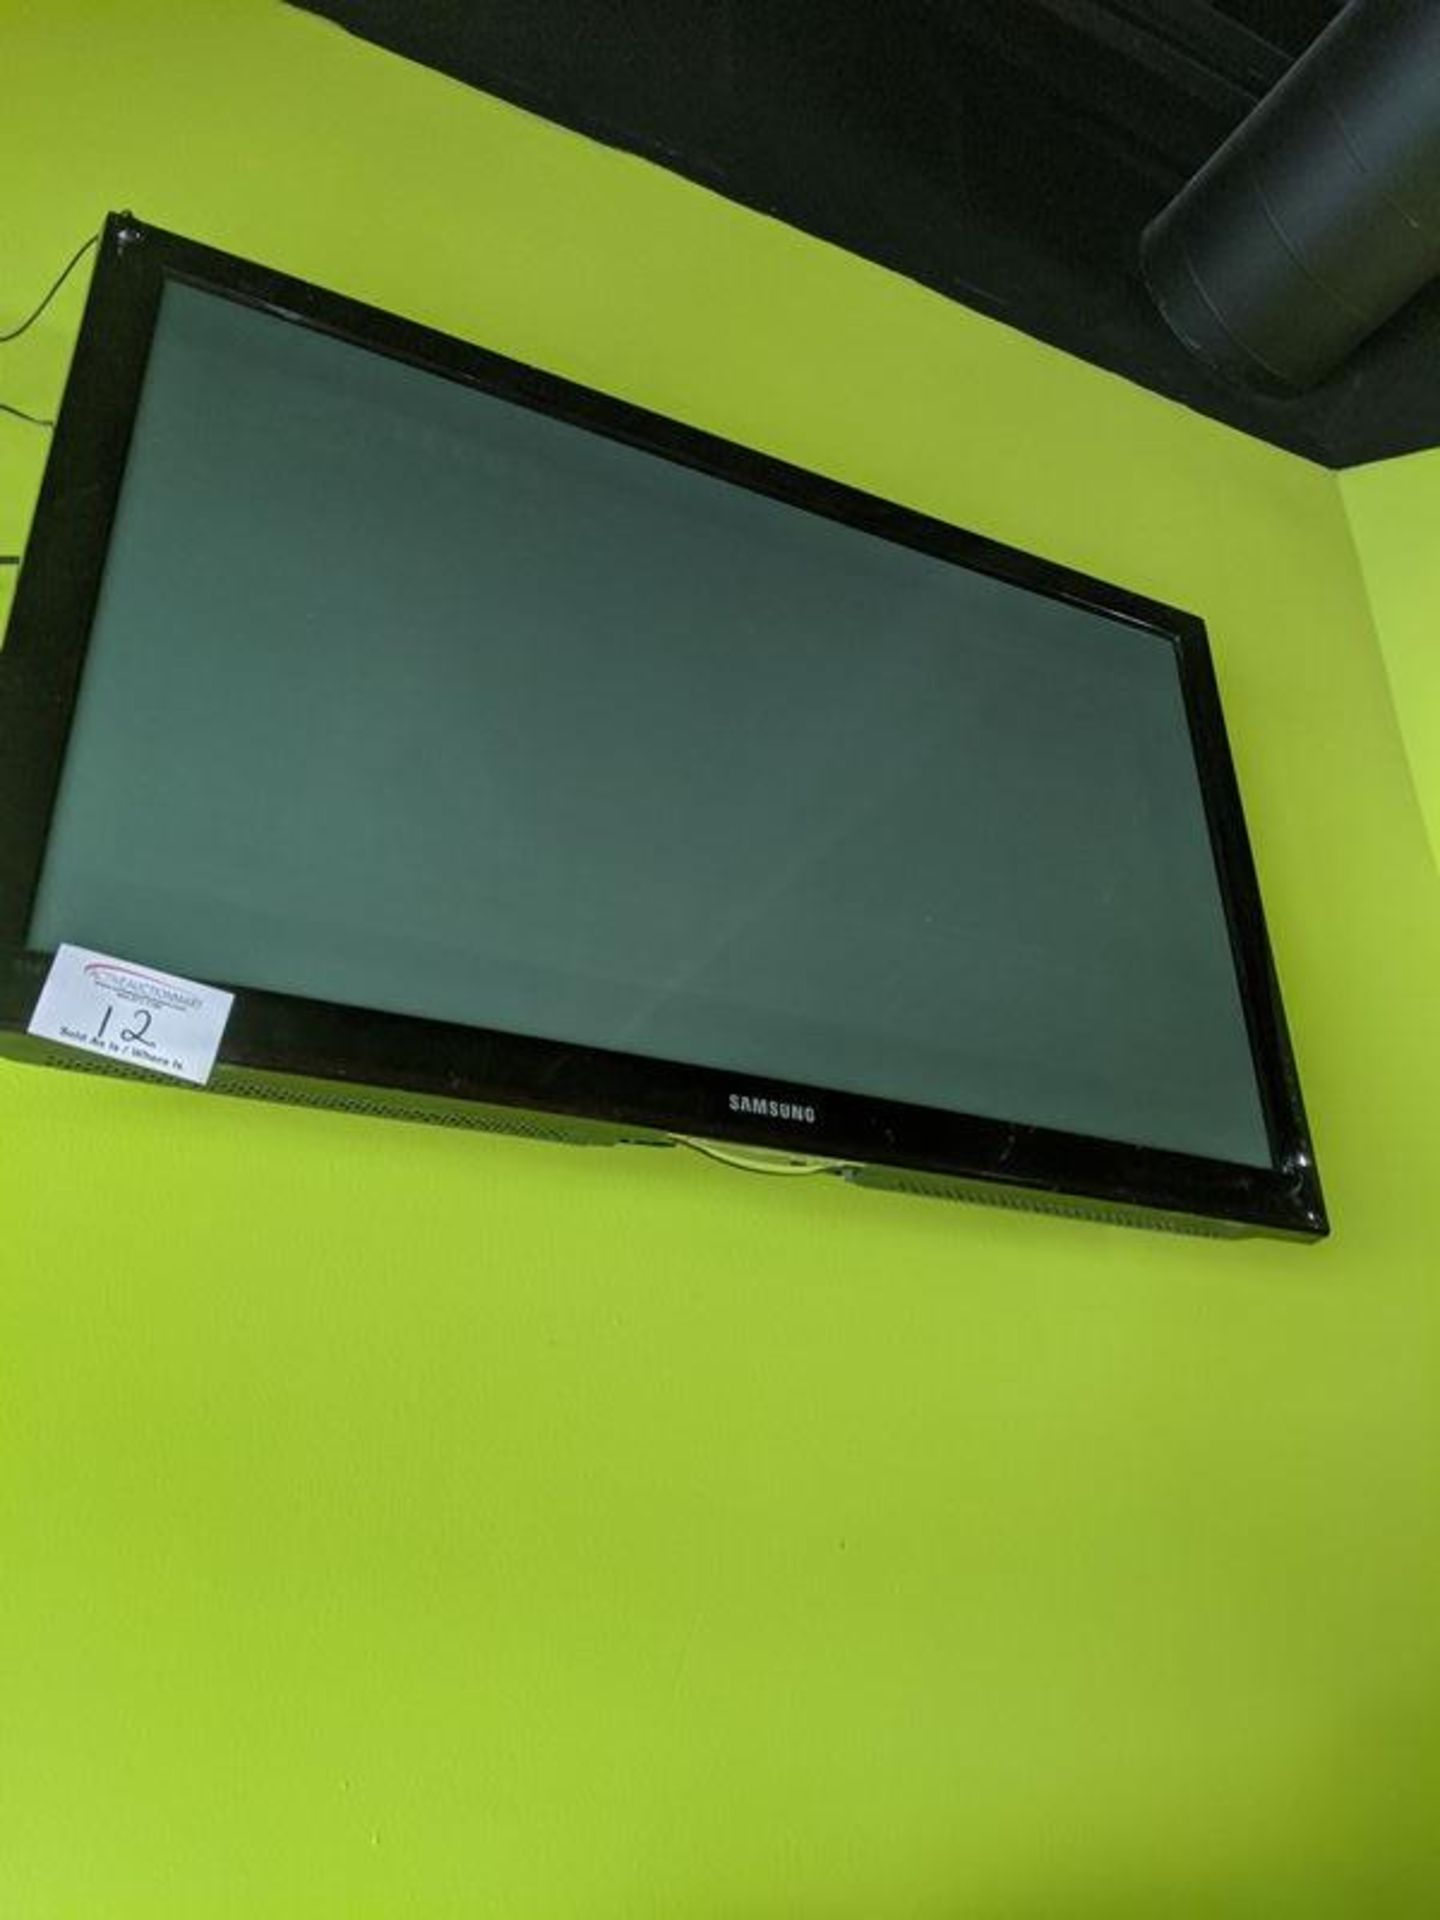 Lot 12 - Samsung TV with Wall Mount